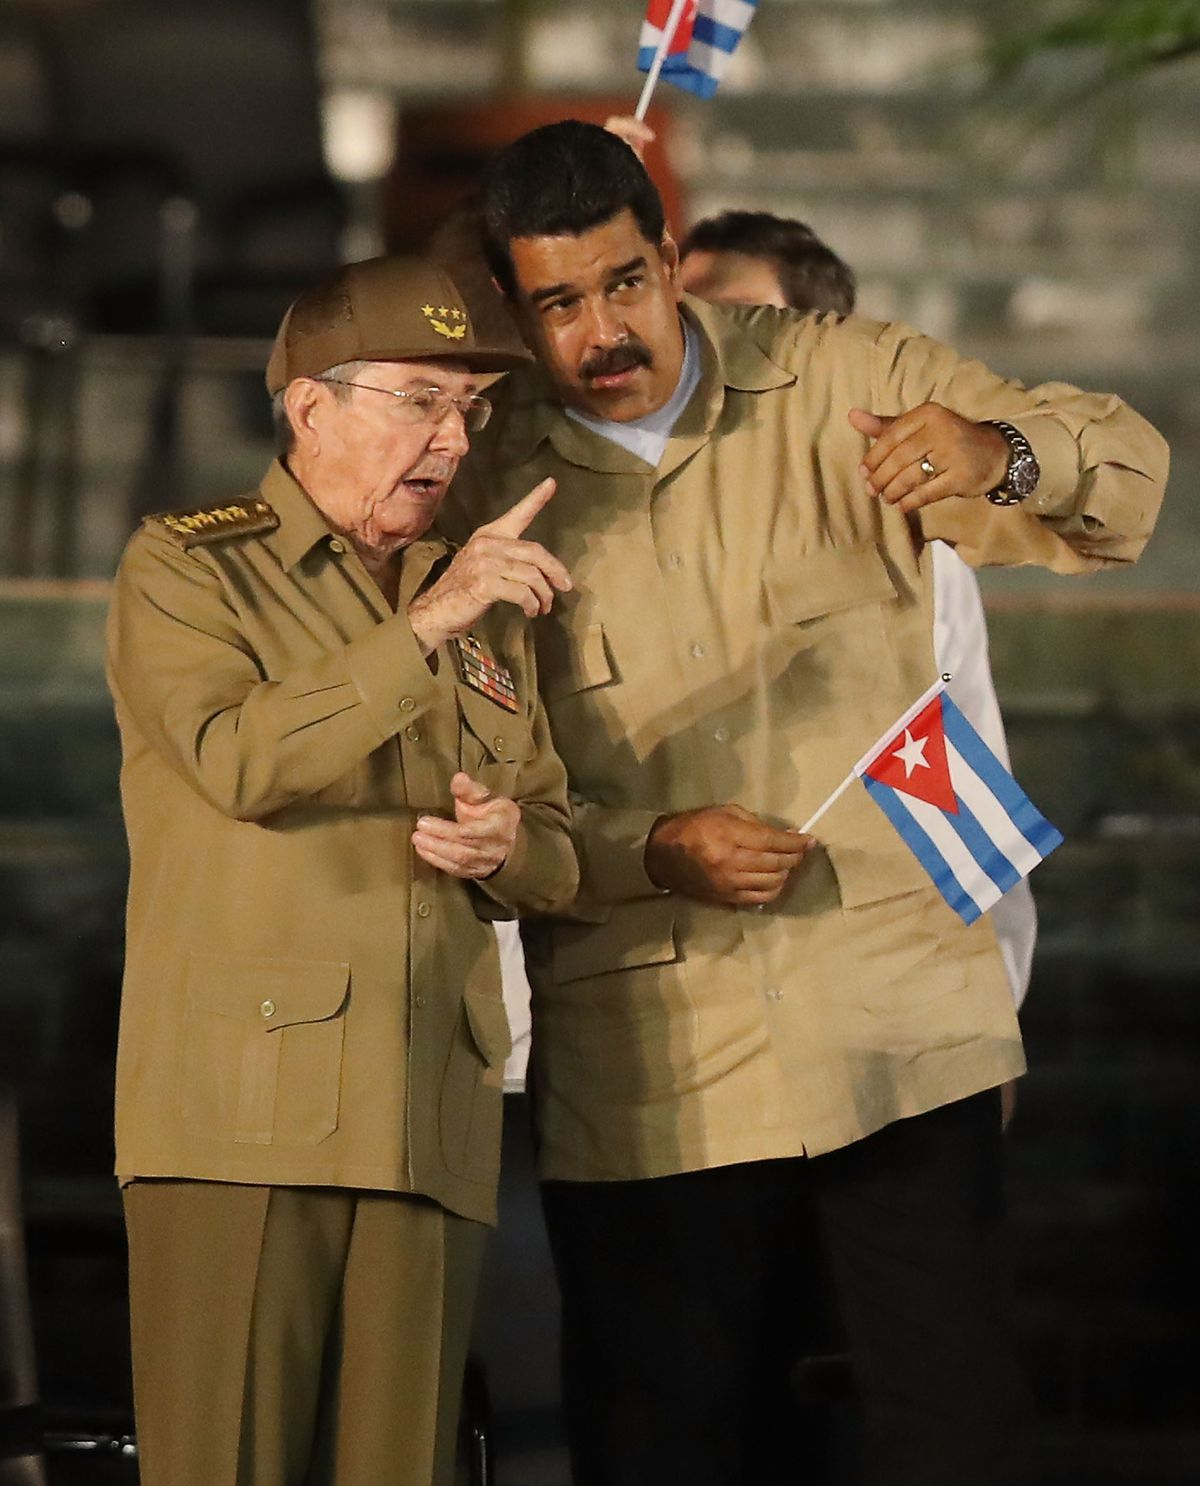 Venezuelan President Nicolas Maduro and Cuban President Raul Castro at a memorial service for former Cuban leader Fidel Castro on December 3, 2016.